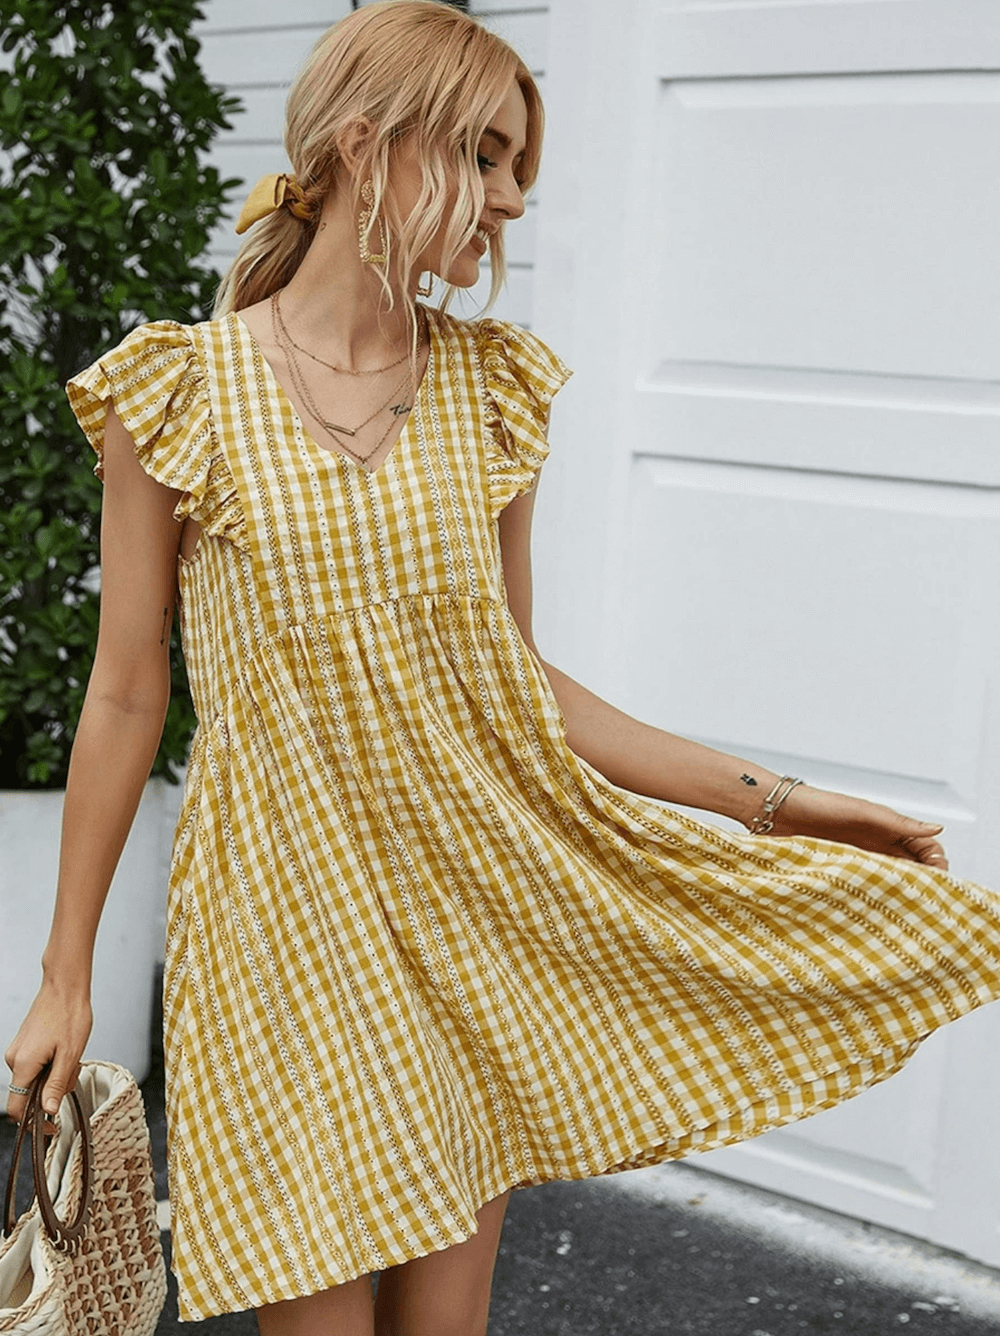 Summer Outfits Sundresses Beach Casual Yellow Gingham Striped Dress Shein